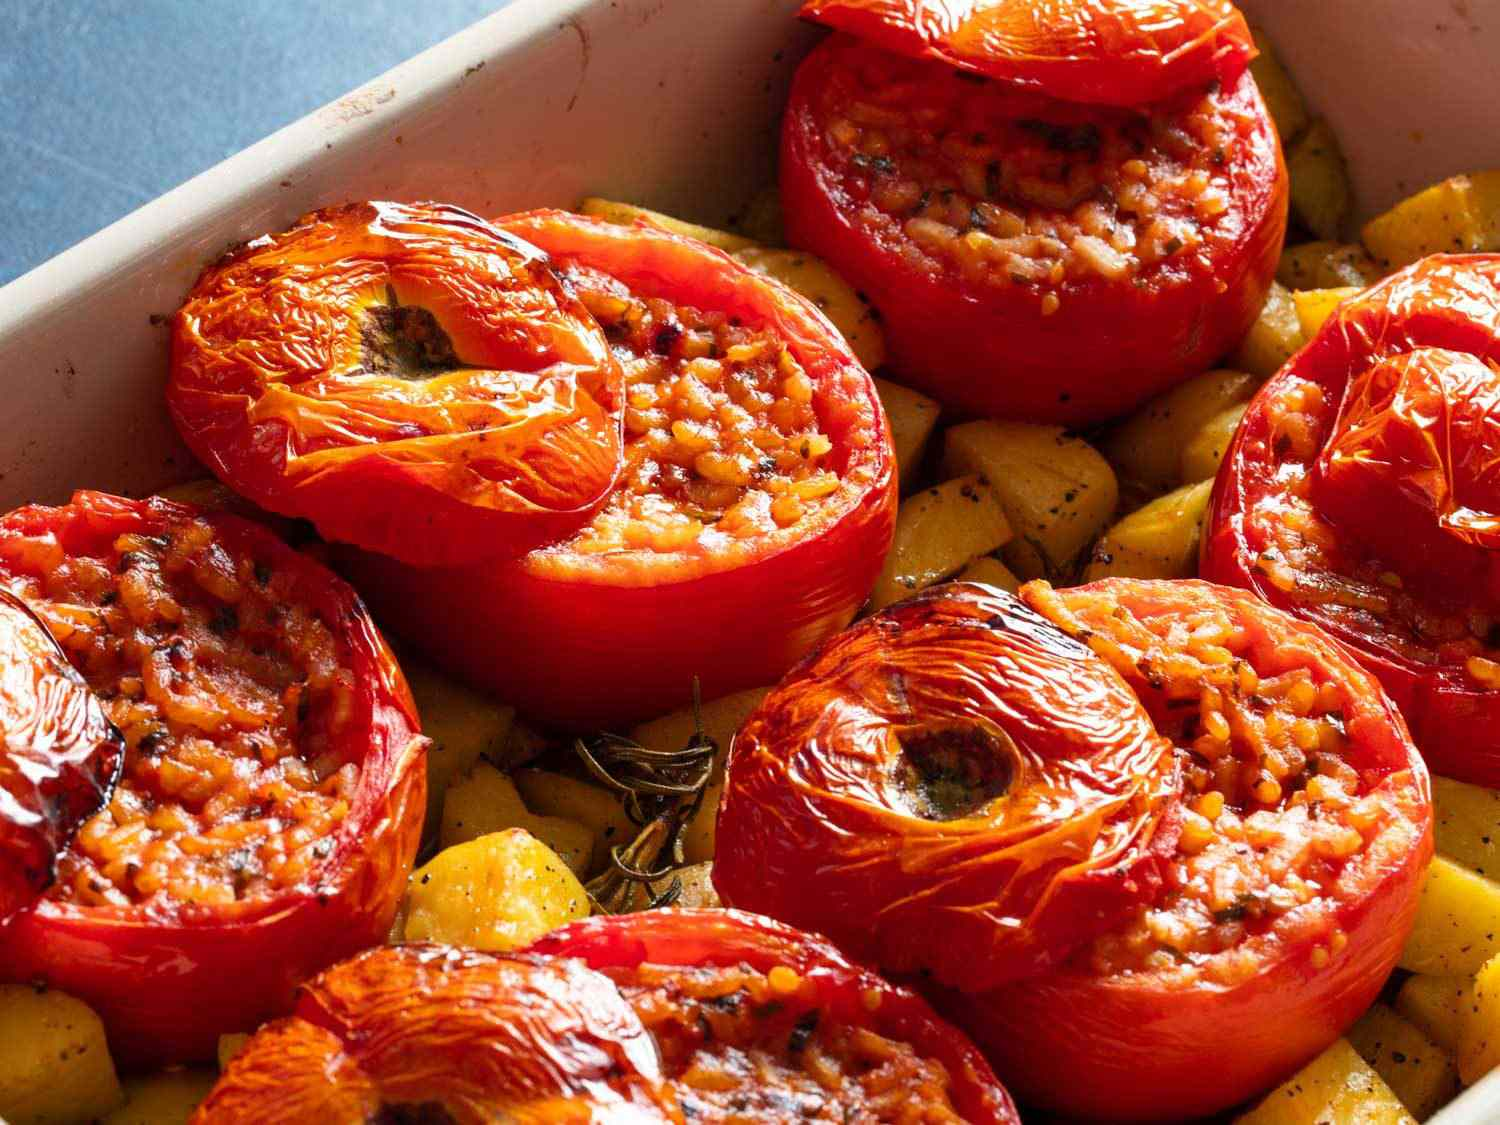 Close-up of rice-stuffed tomatoes in a baking dish with potatoes.